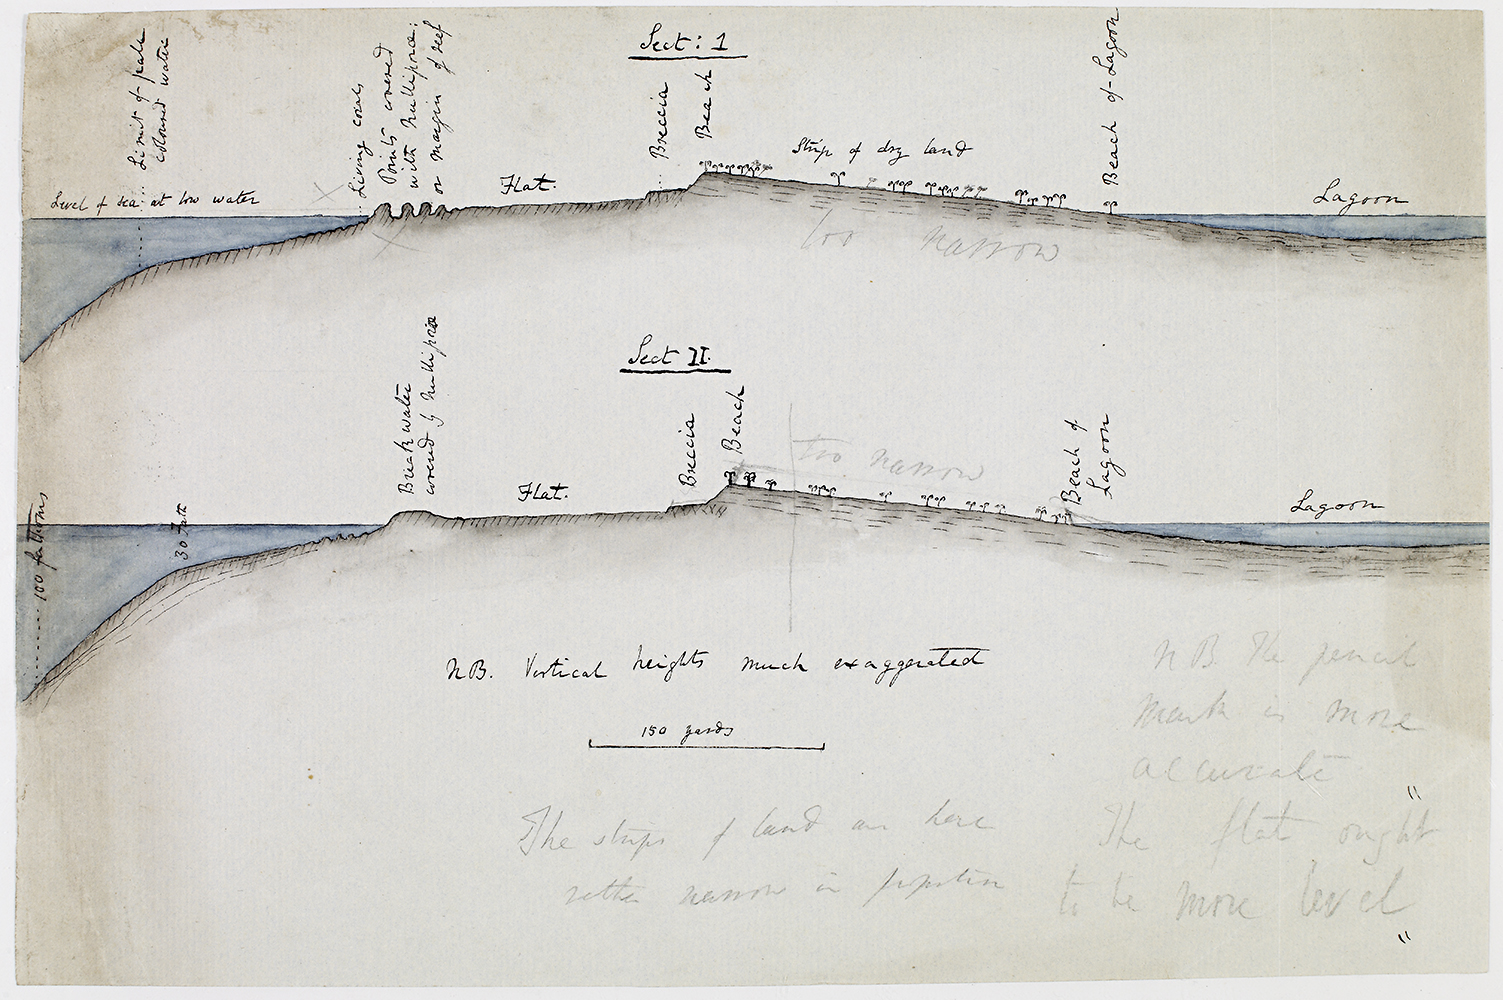 Darwin's hand-coloured cross-sectional view of the reef at Cocos (Keeling) atoll